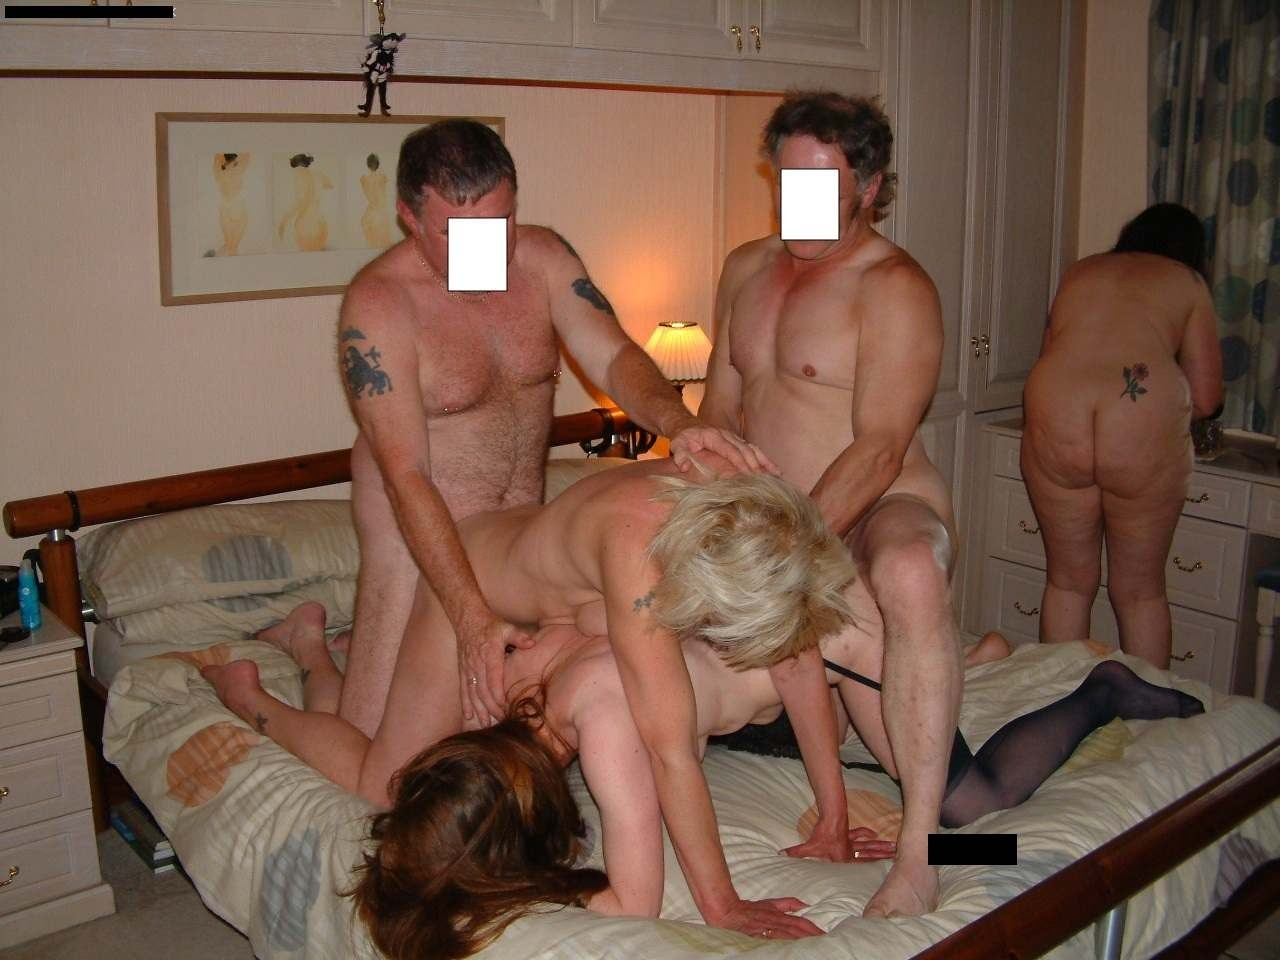 Can suggest Senior sex swinger